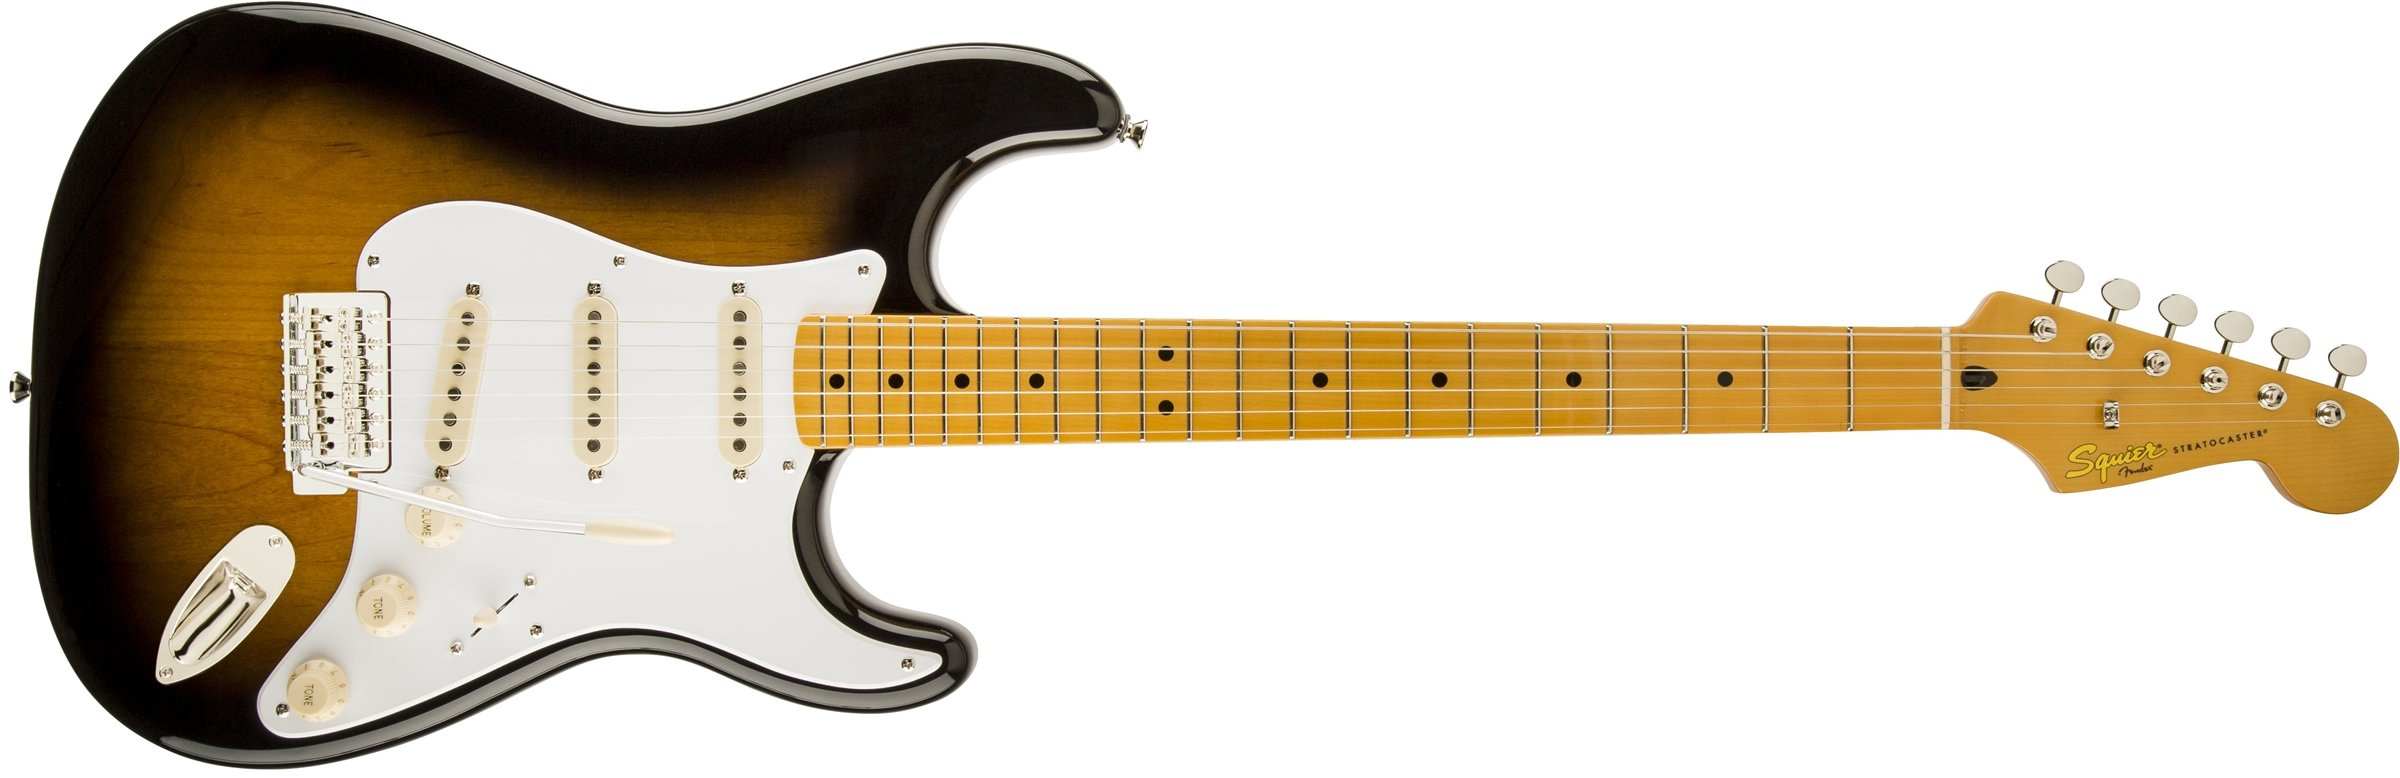 Squier by Fender 303000503 Classic Vibe 50's Stratocaster Electric Guitar - 2-Color Sunburst - Maple Fingerboard